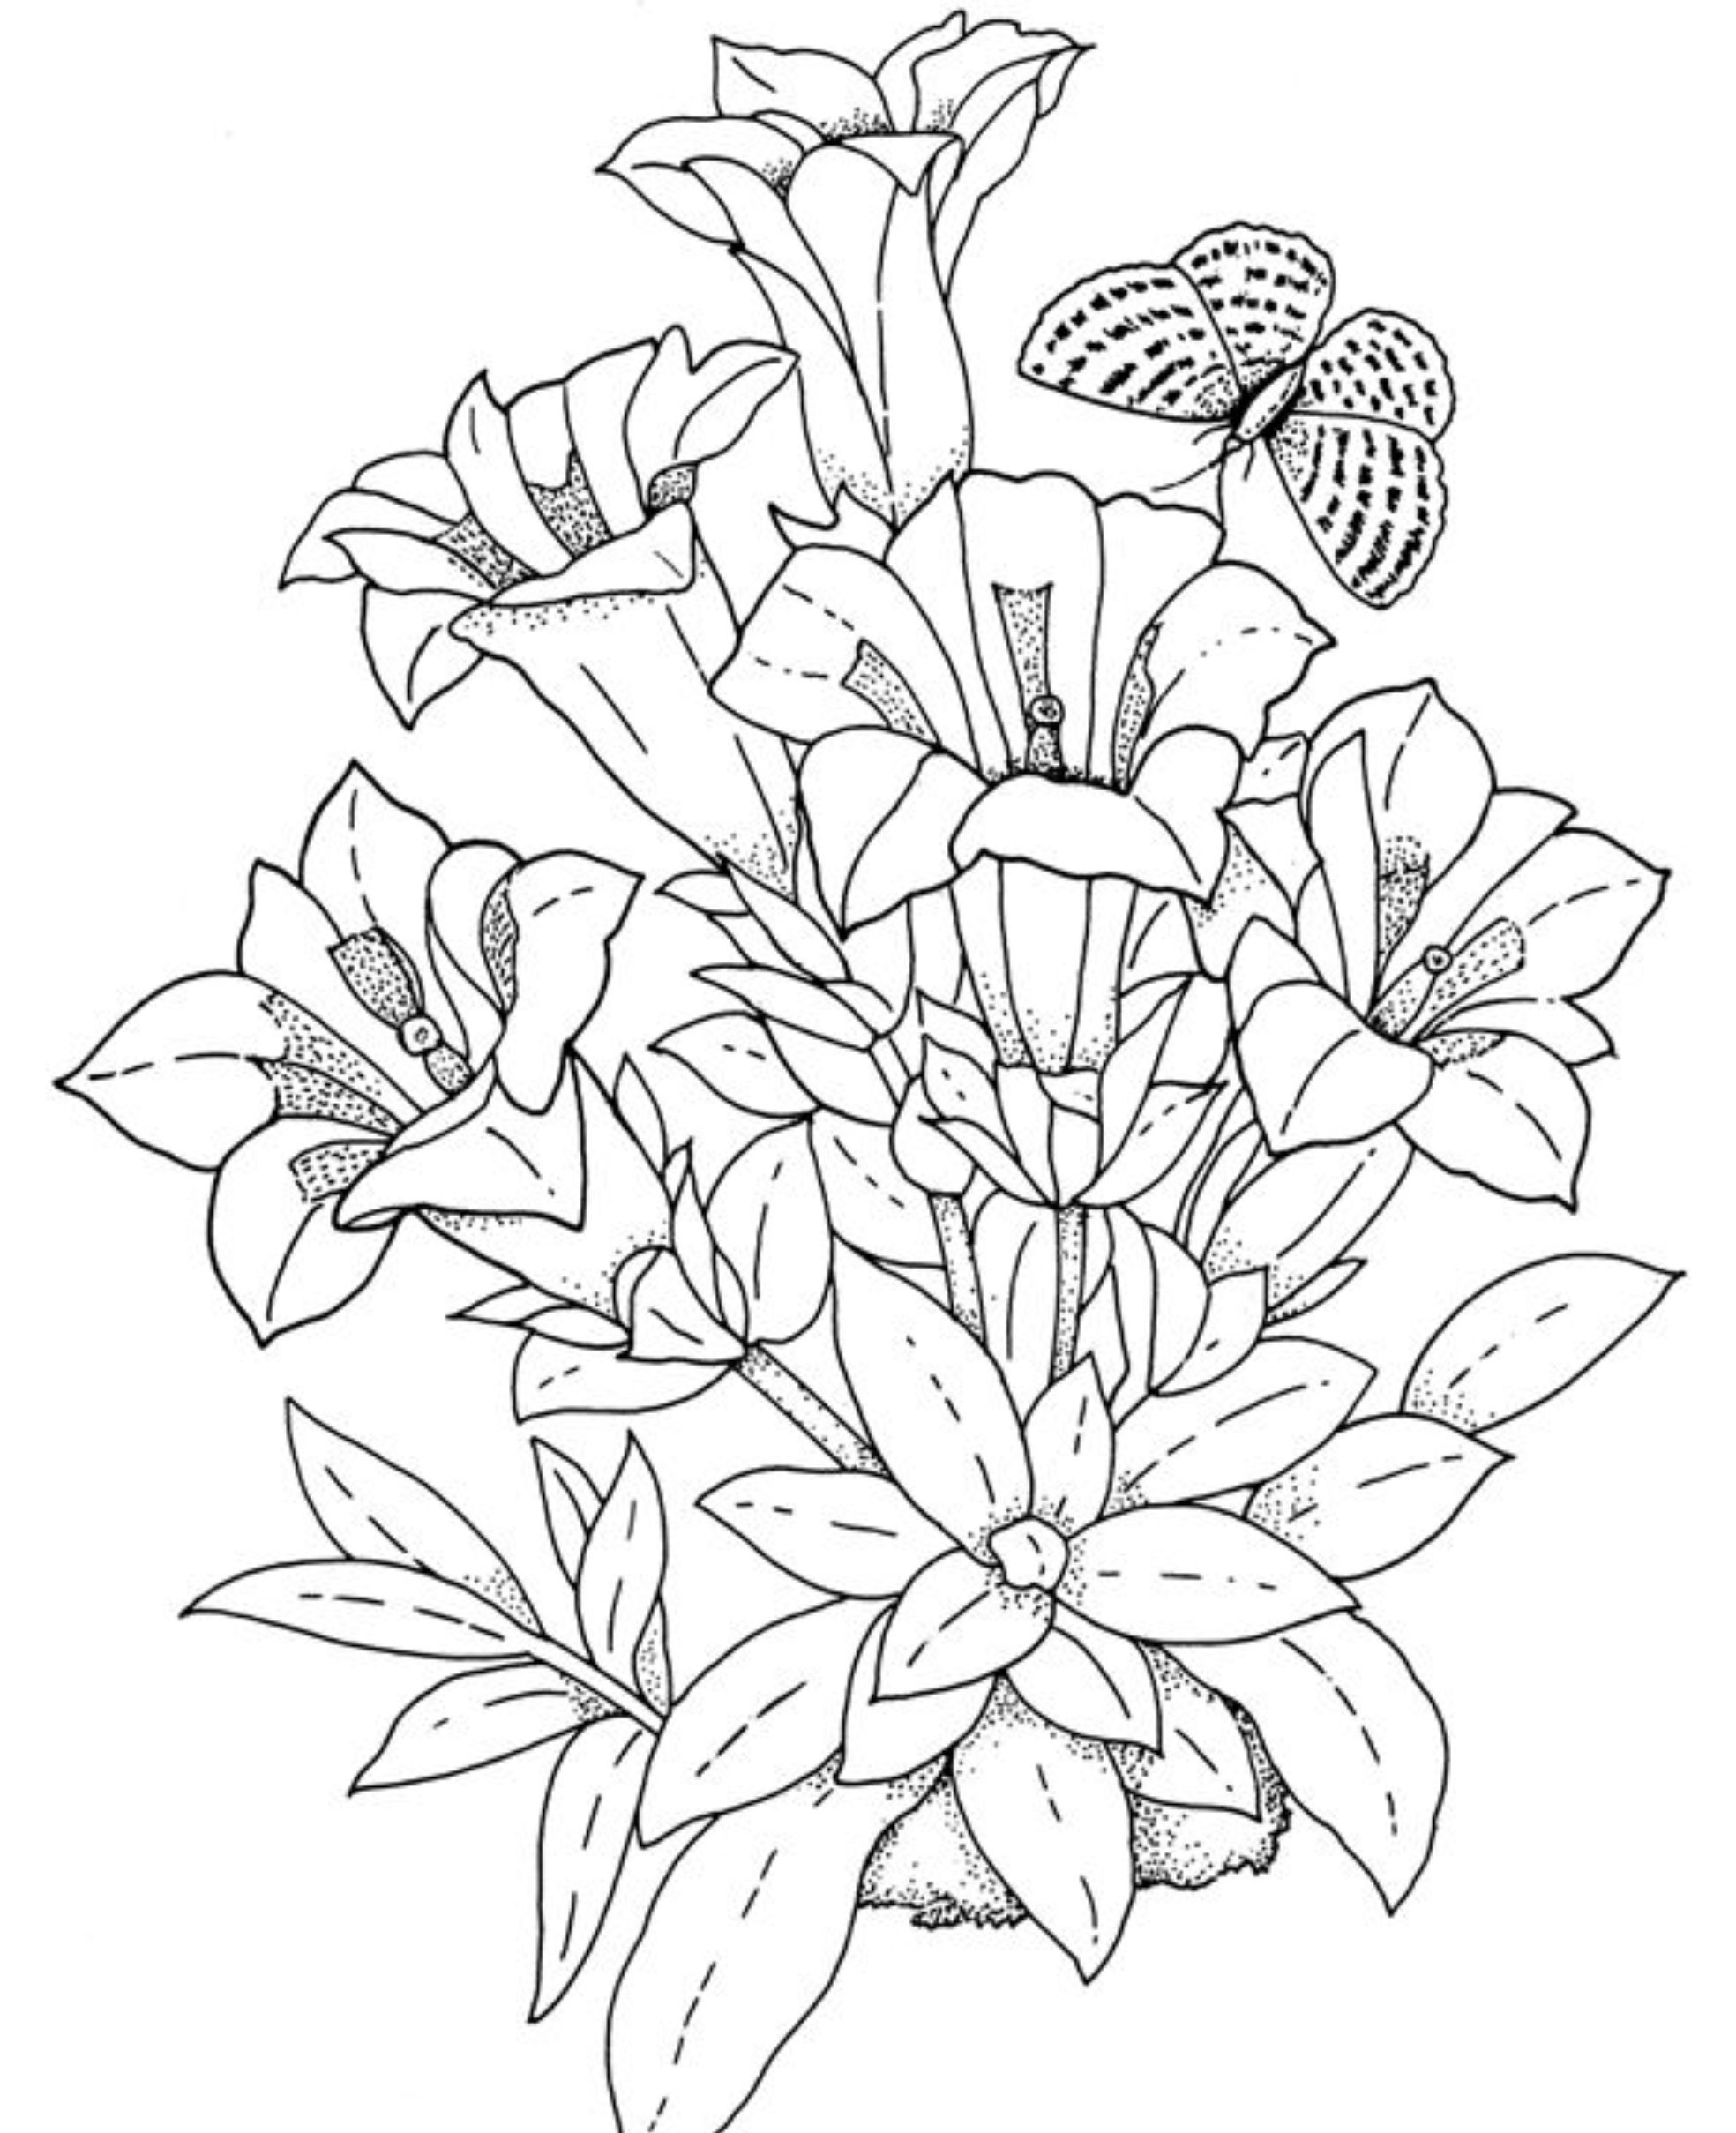 coloring sheets of flowers flower coloring pages for adults at getdrawings free coloring sheets of flowers